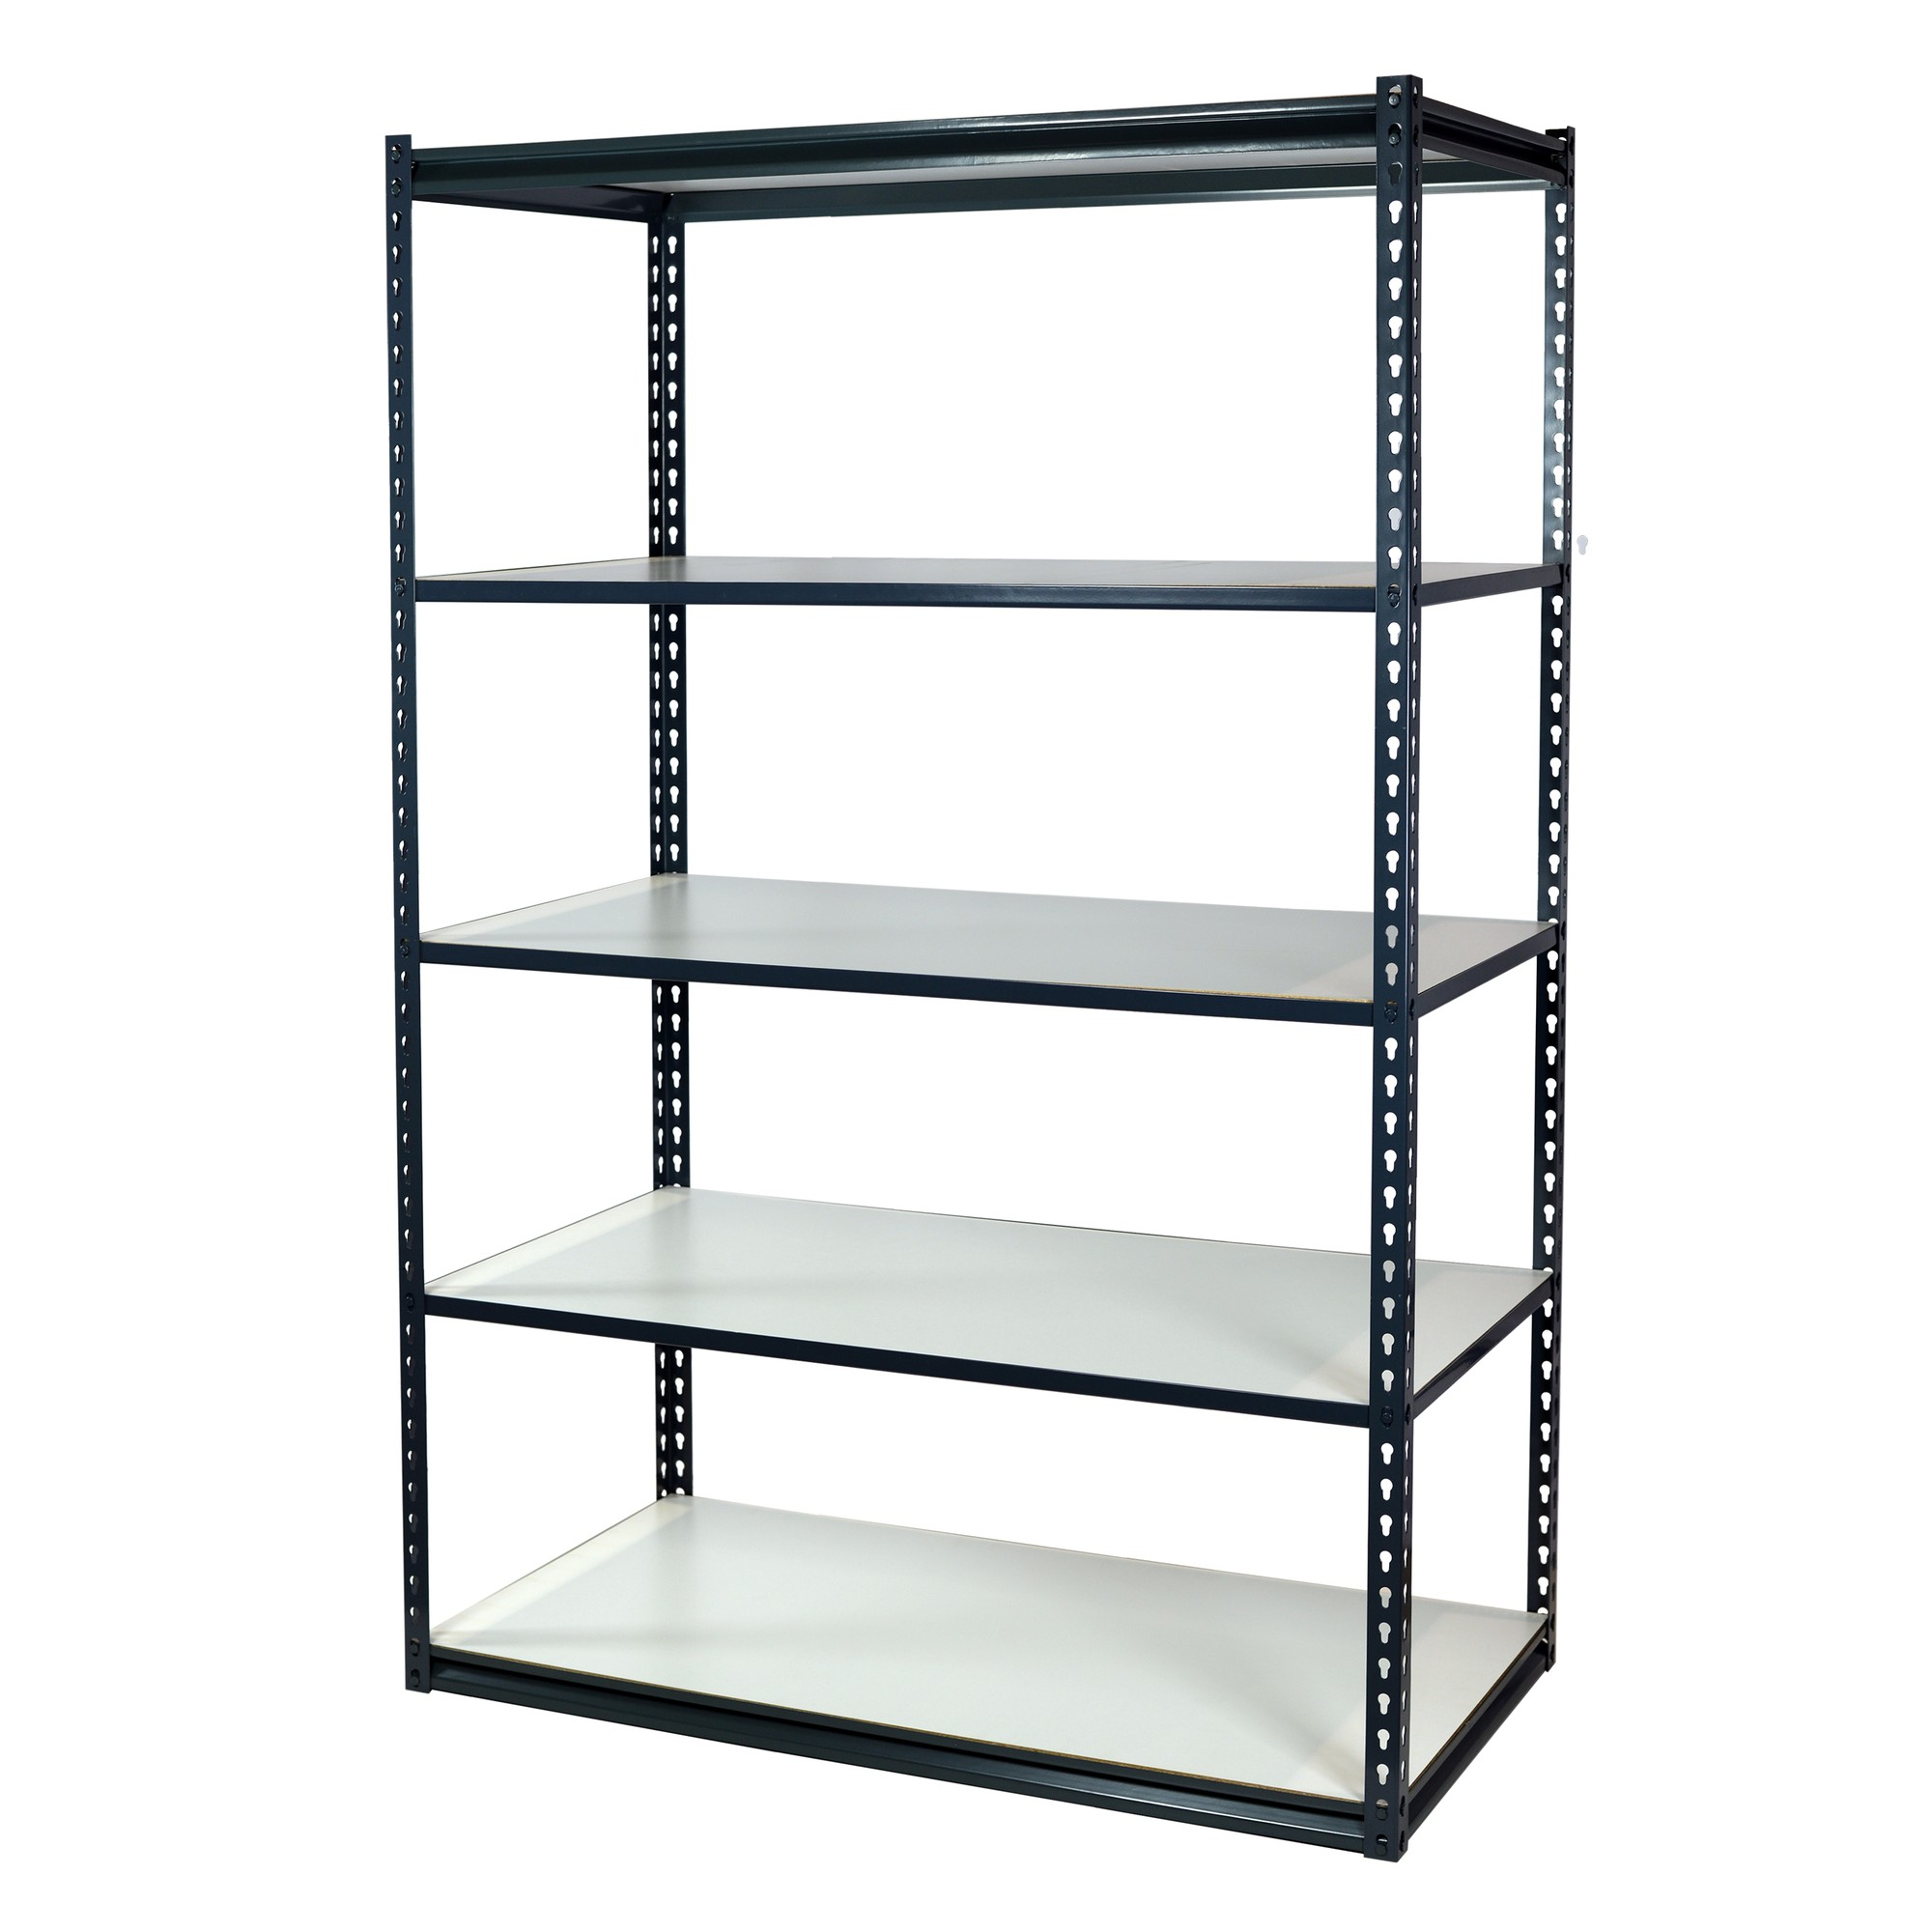 Garage Shelving Units Storage Max Garage Shelving Boltless 36 X 12 X 72 Heavy Duty 5 Shelves